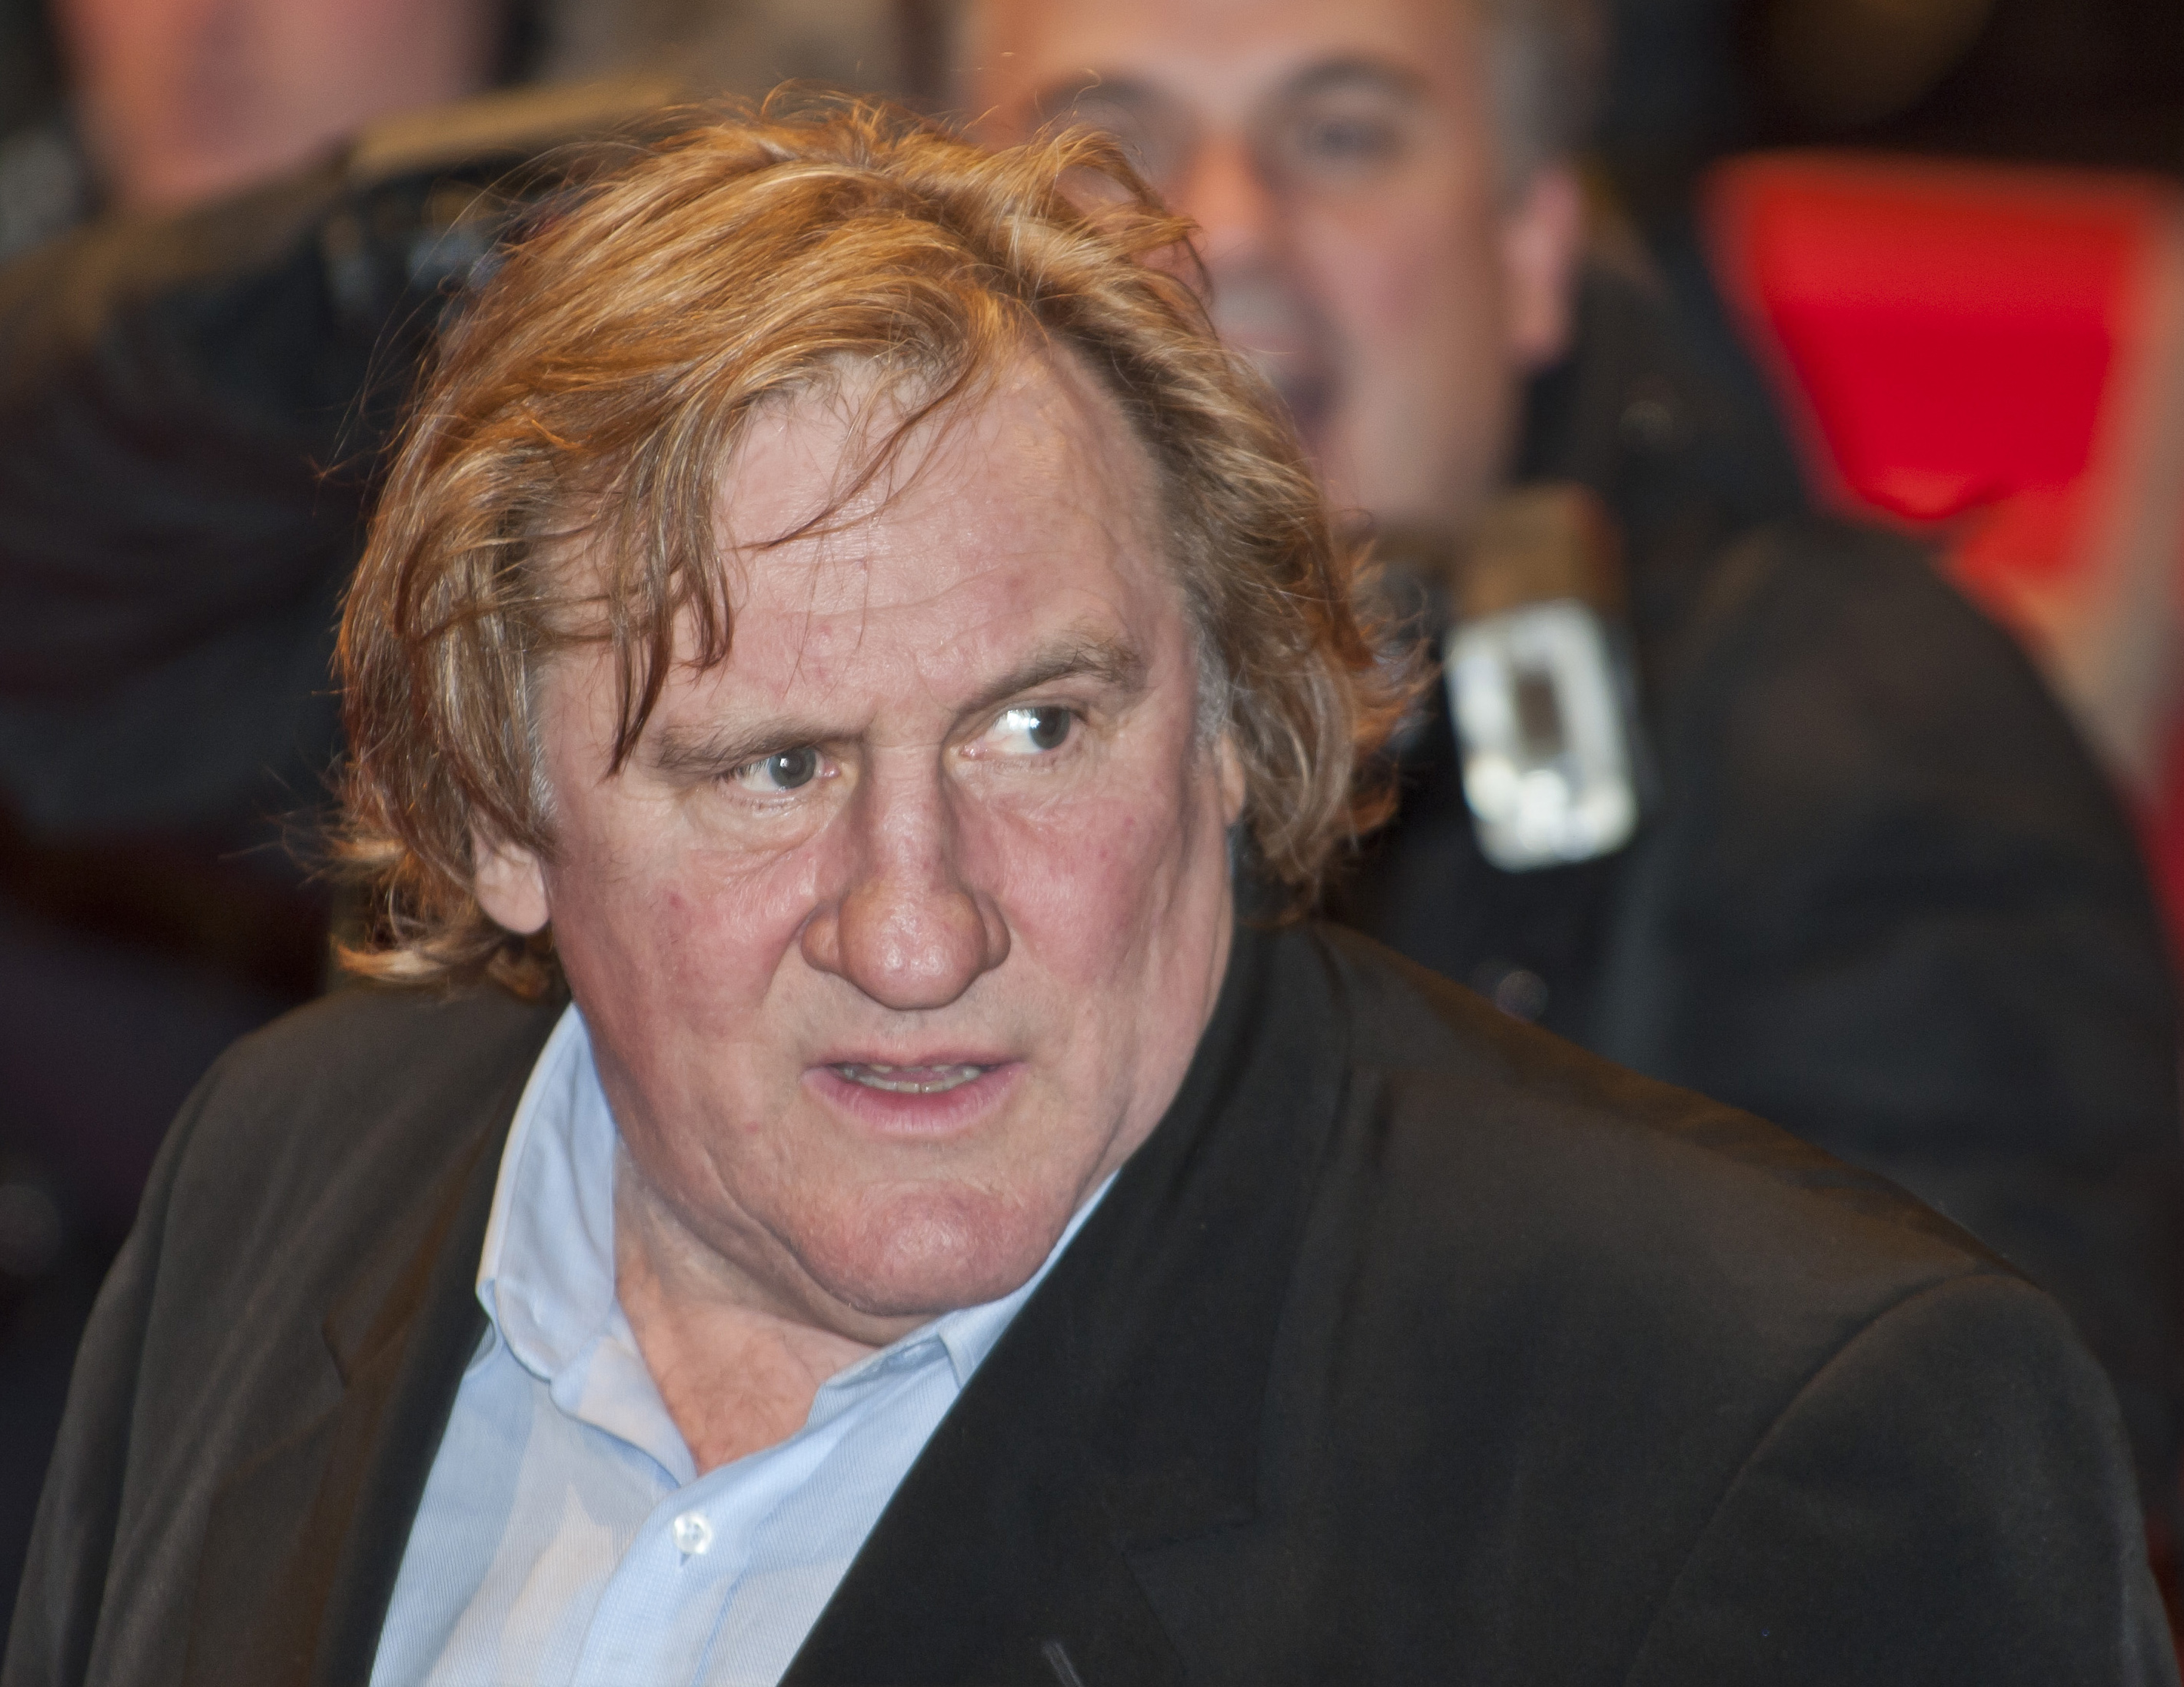 http://upload.wikimedia.org/wikipedia/commons/2/2b/G%C3%A9rard_Depardieu_(Berlin_Film_Festival_2010)_2.jpg